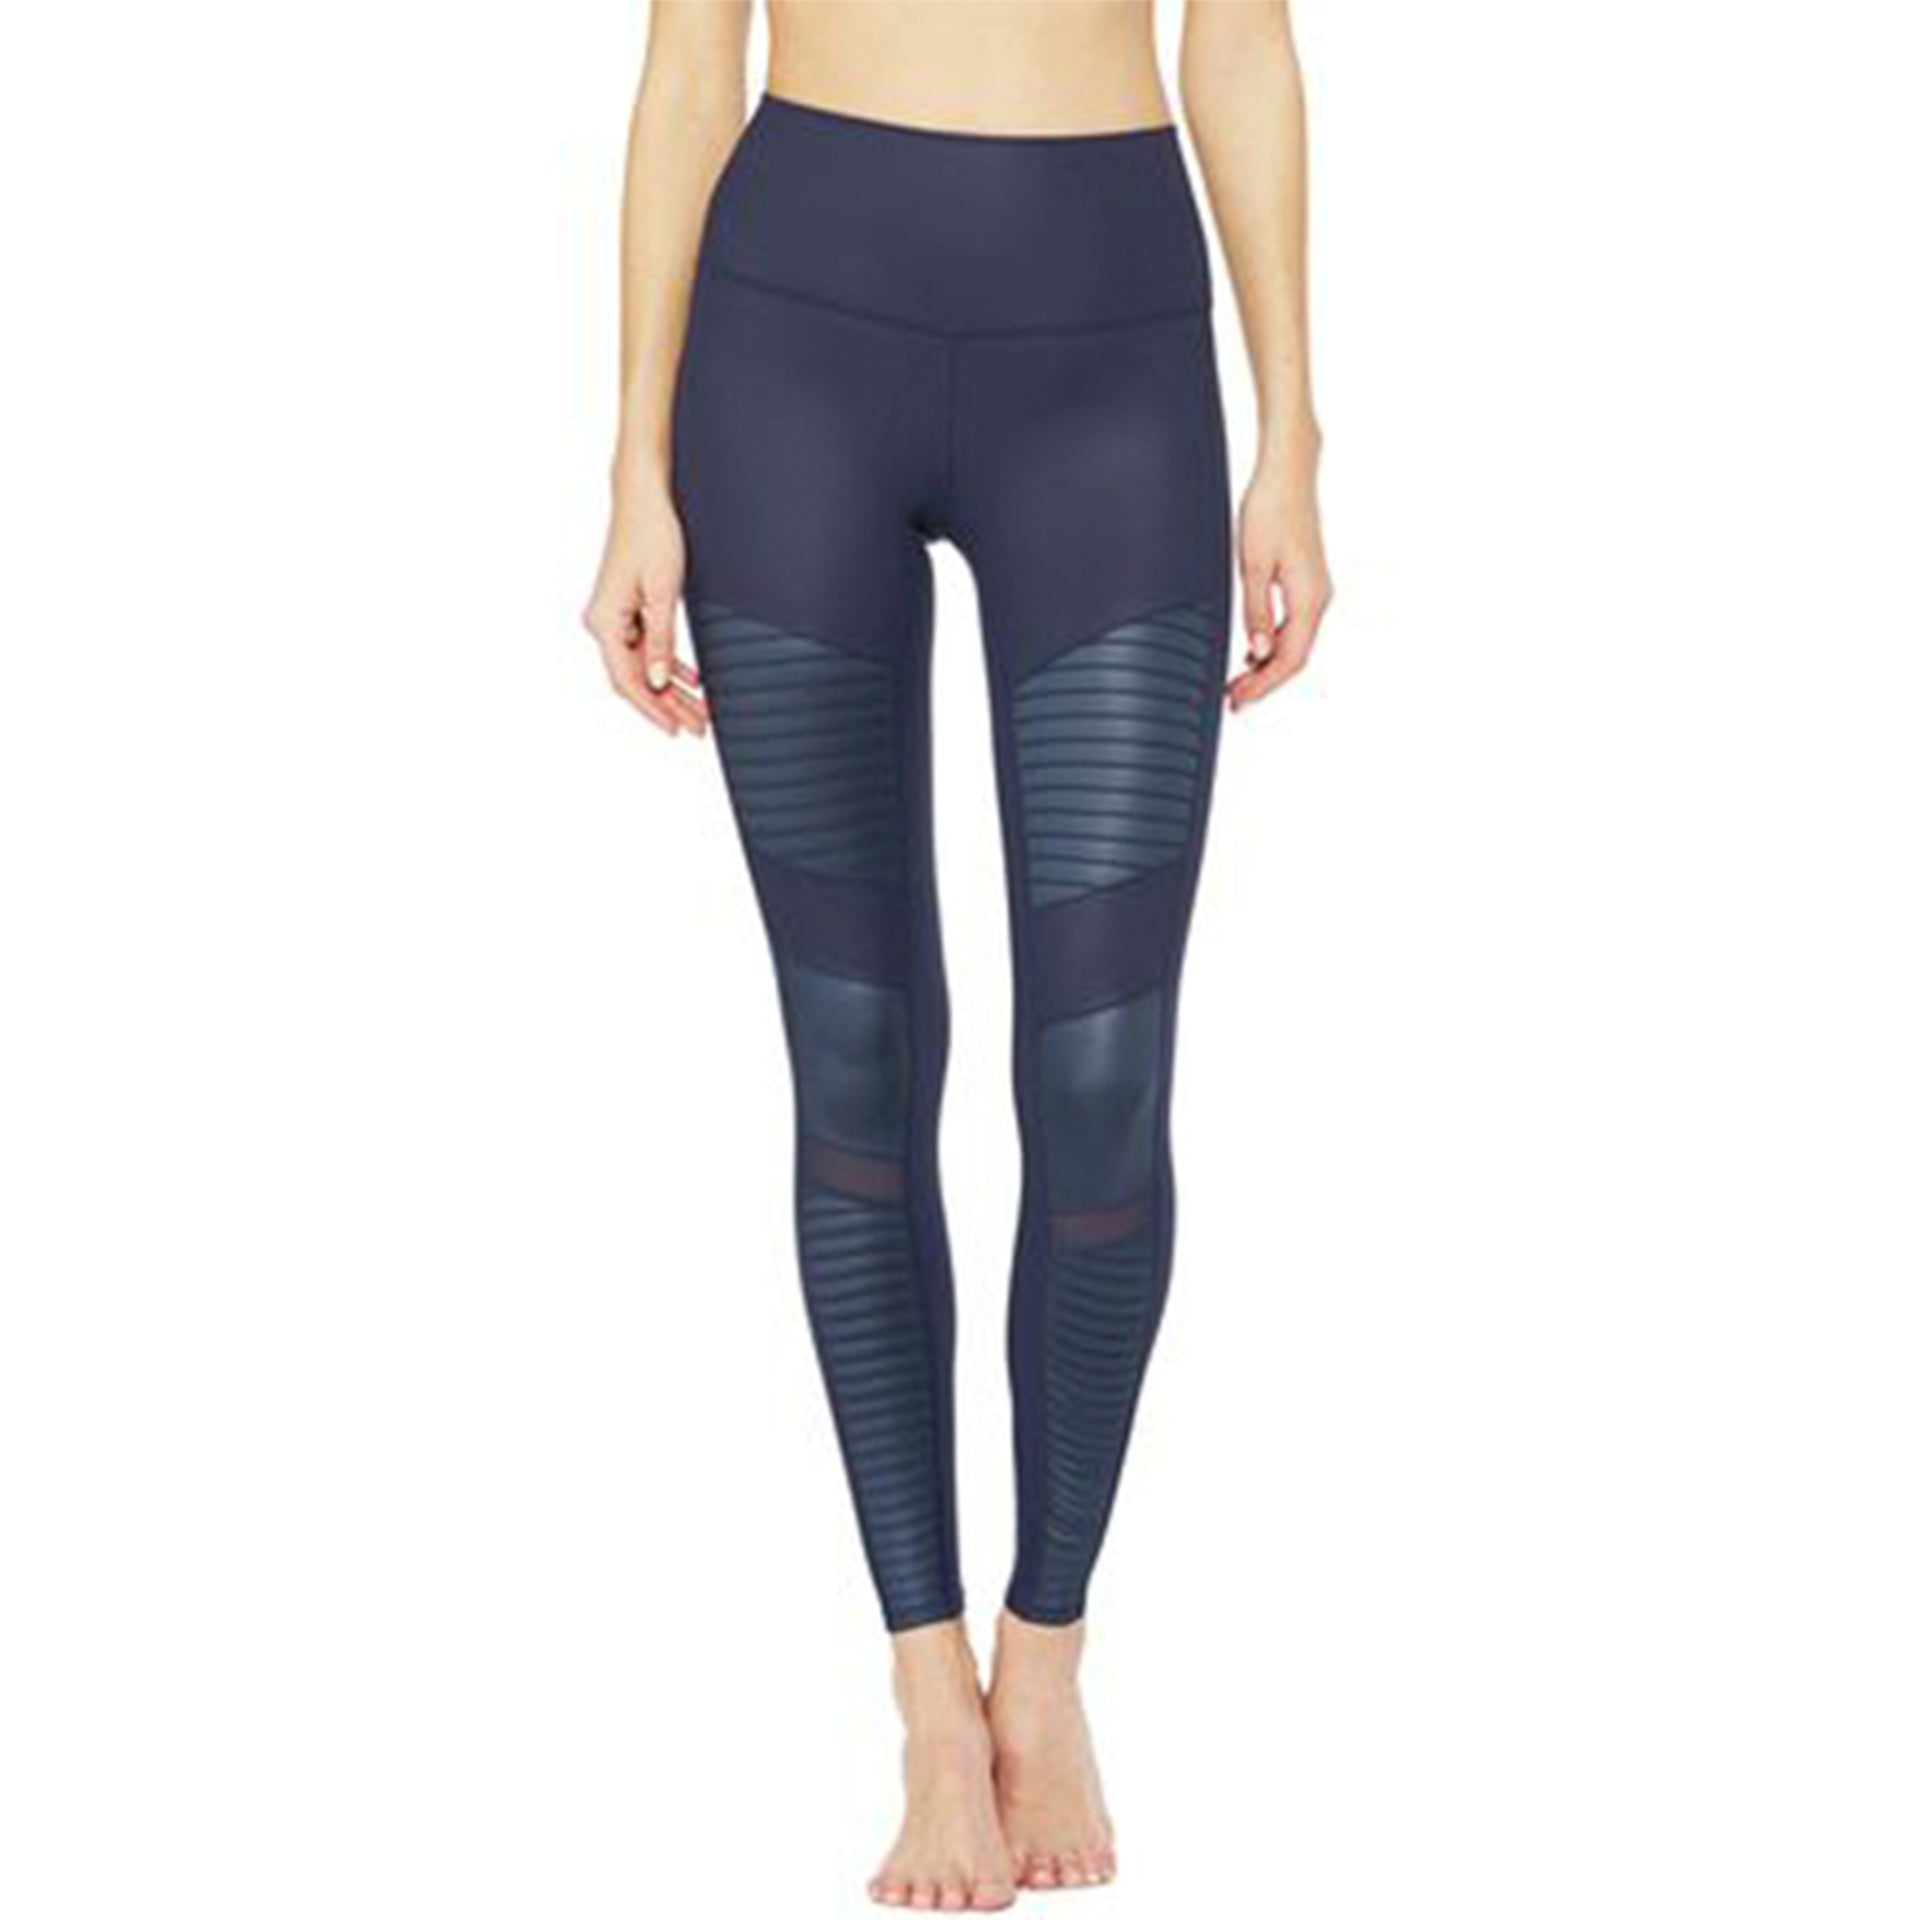 Alo Yoga High Waist Moto Legging in Navy/Navy Gloss